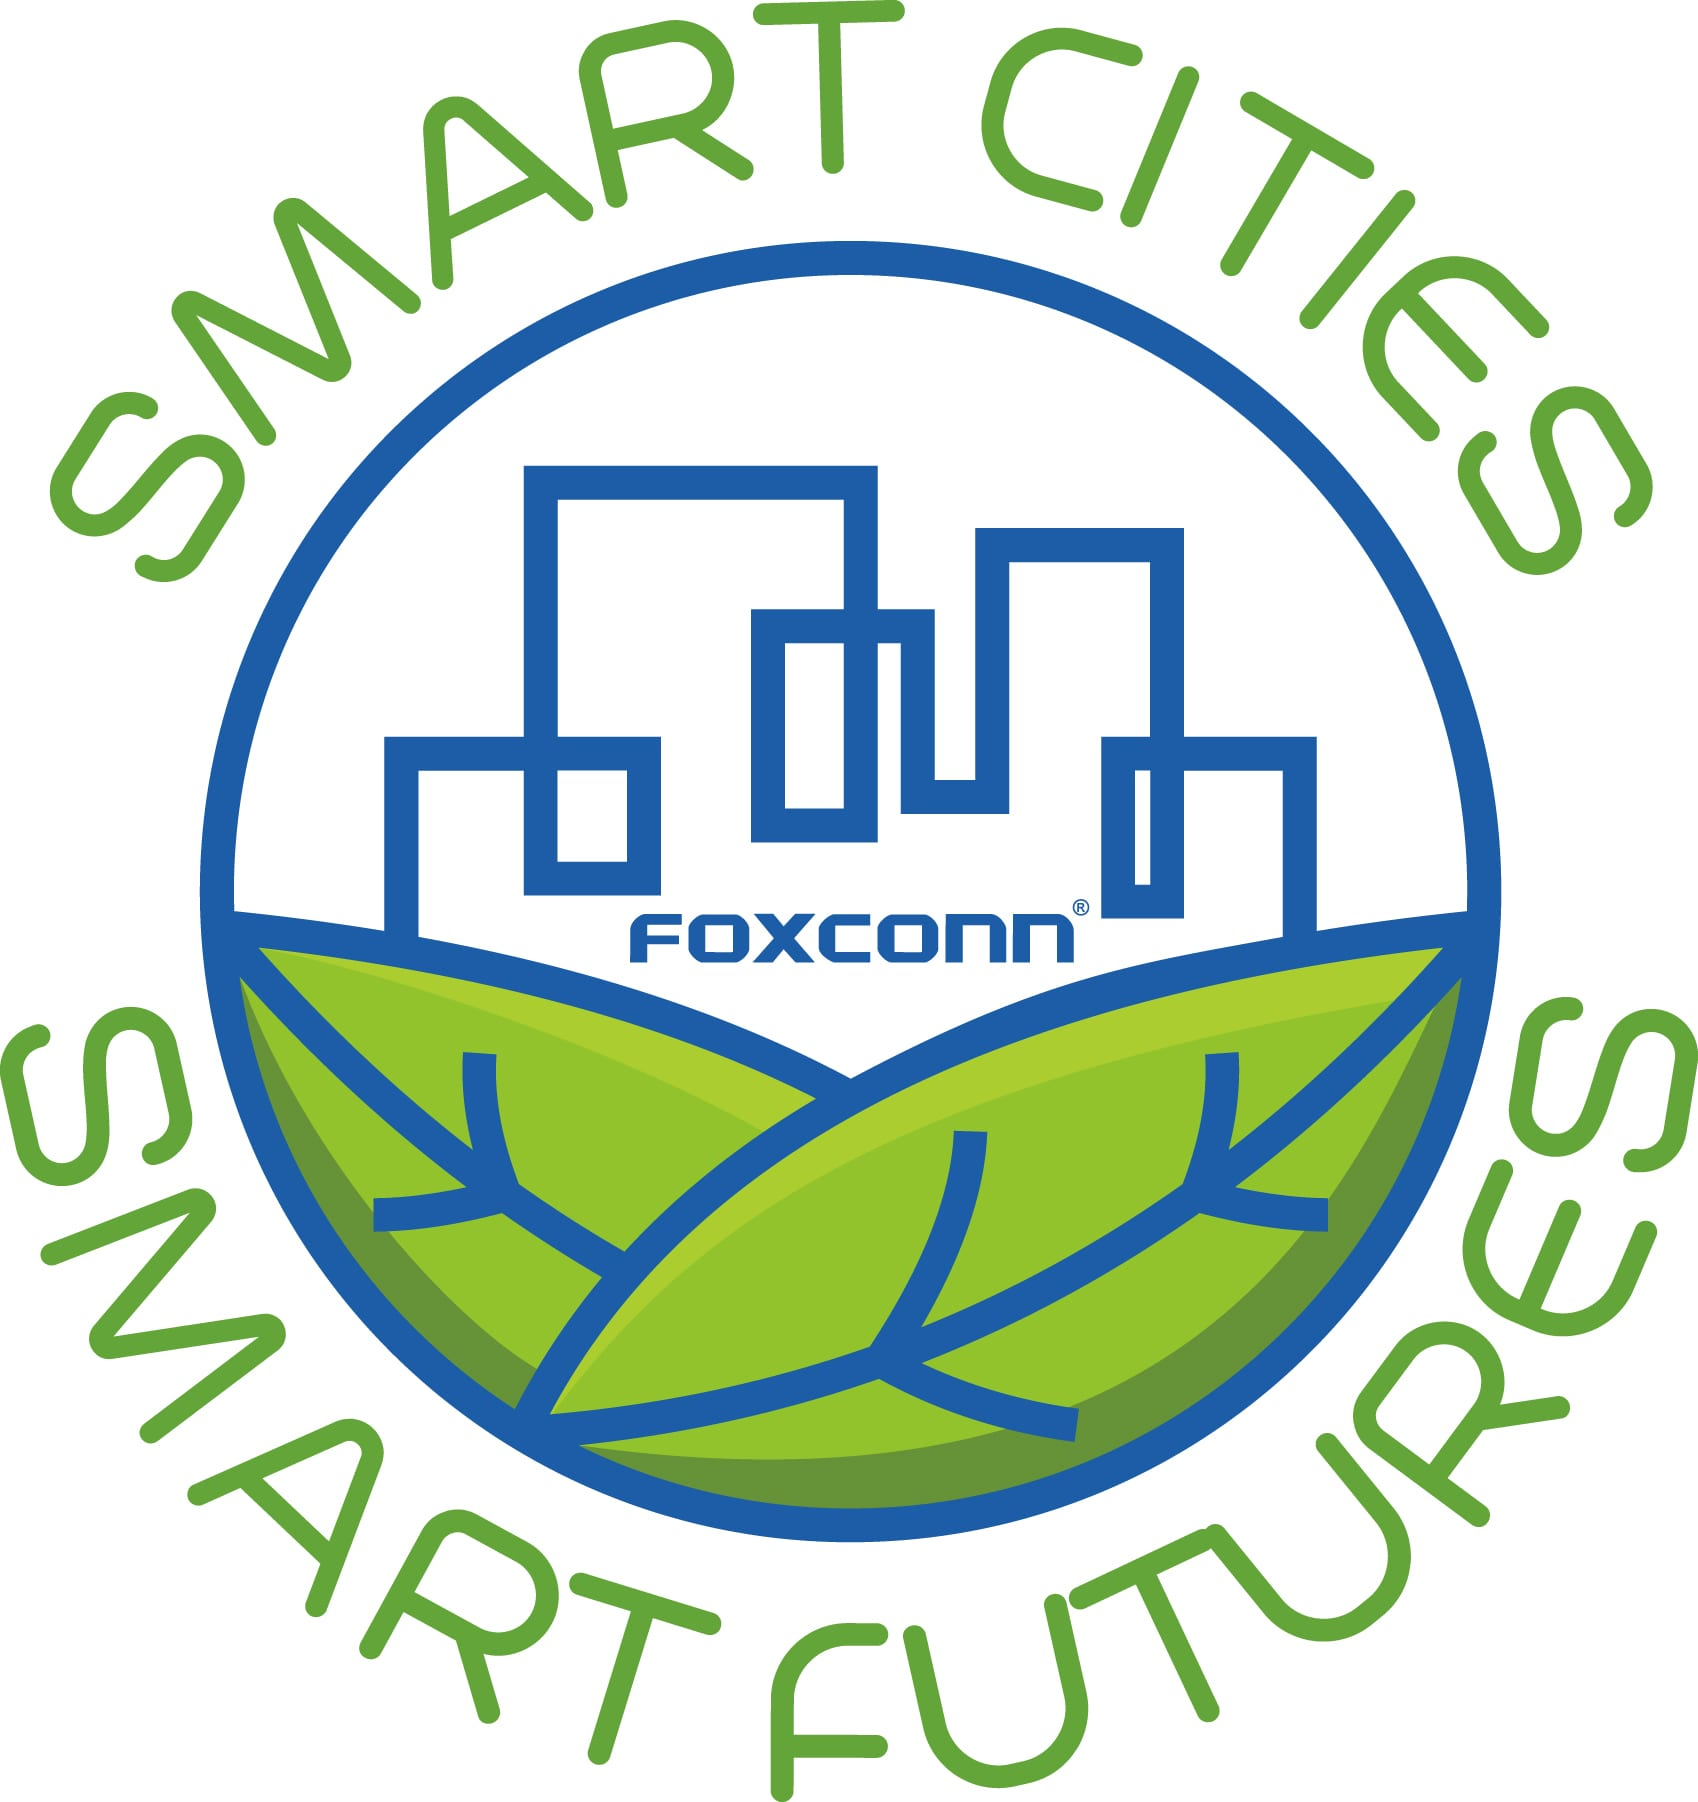 """Foxconn launches """"Smart Cities – Smart Futures Competition"""""""